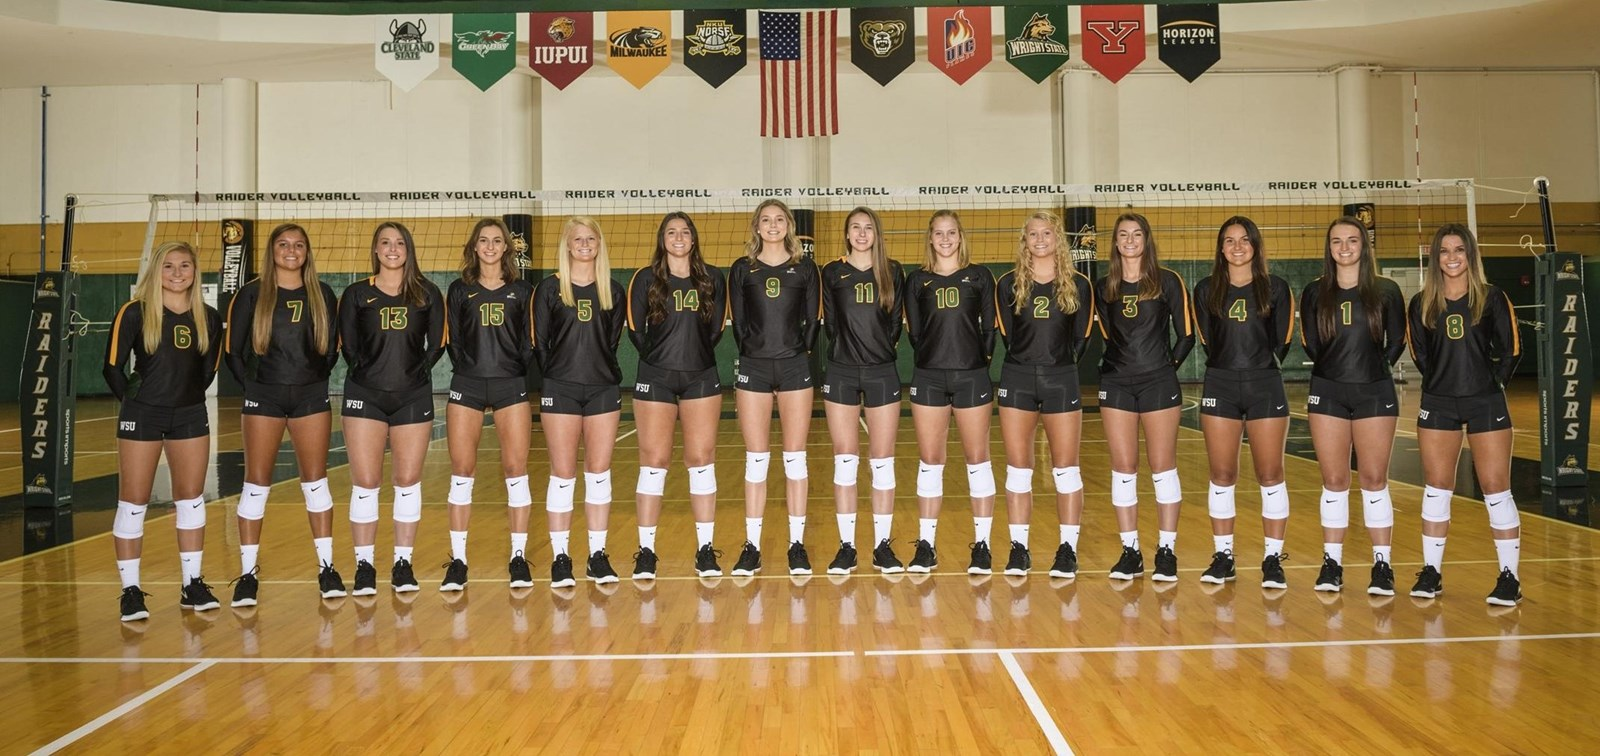 2018 Women S Volleyball Roster Wright State University Athletics